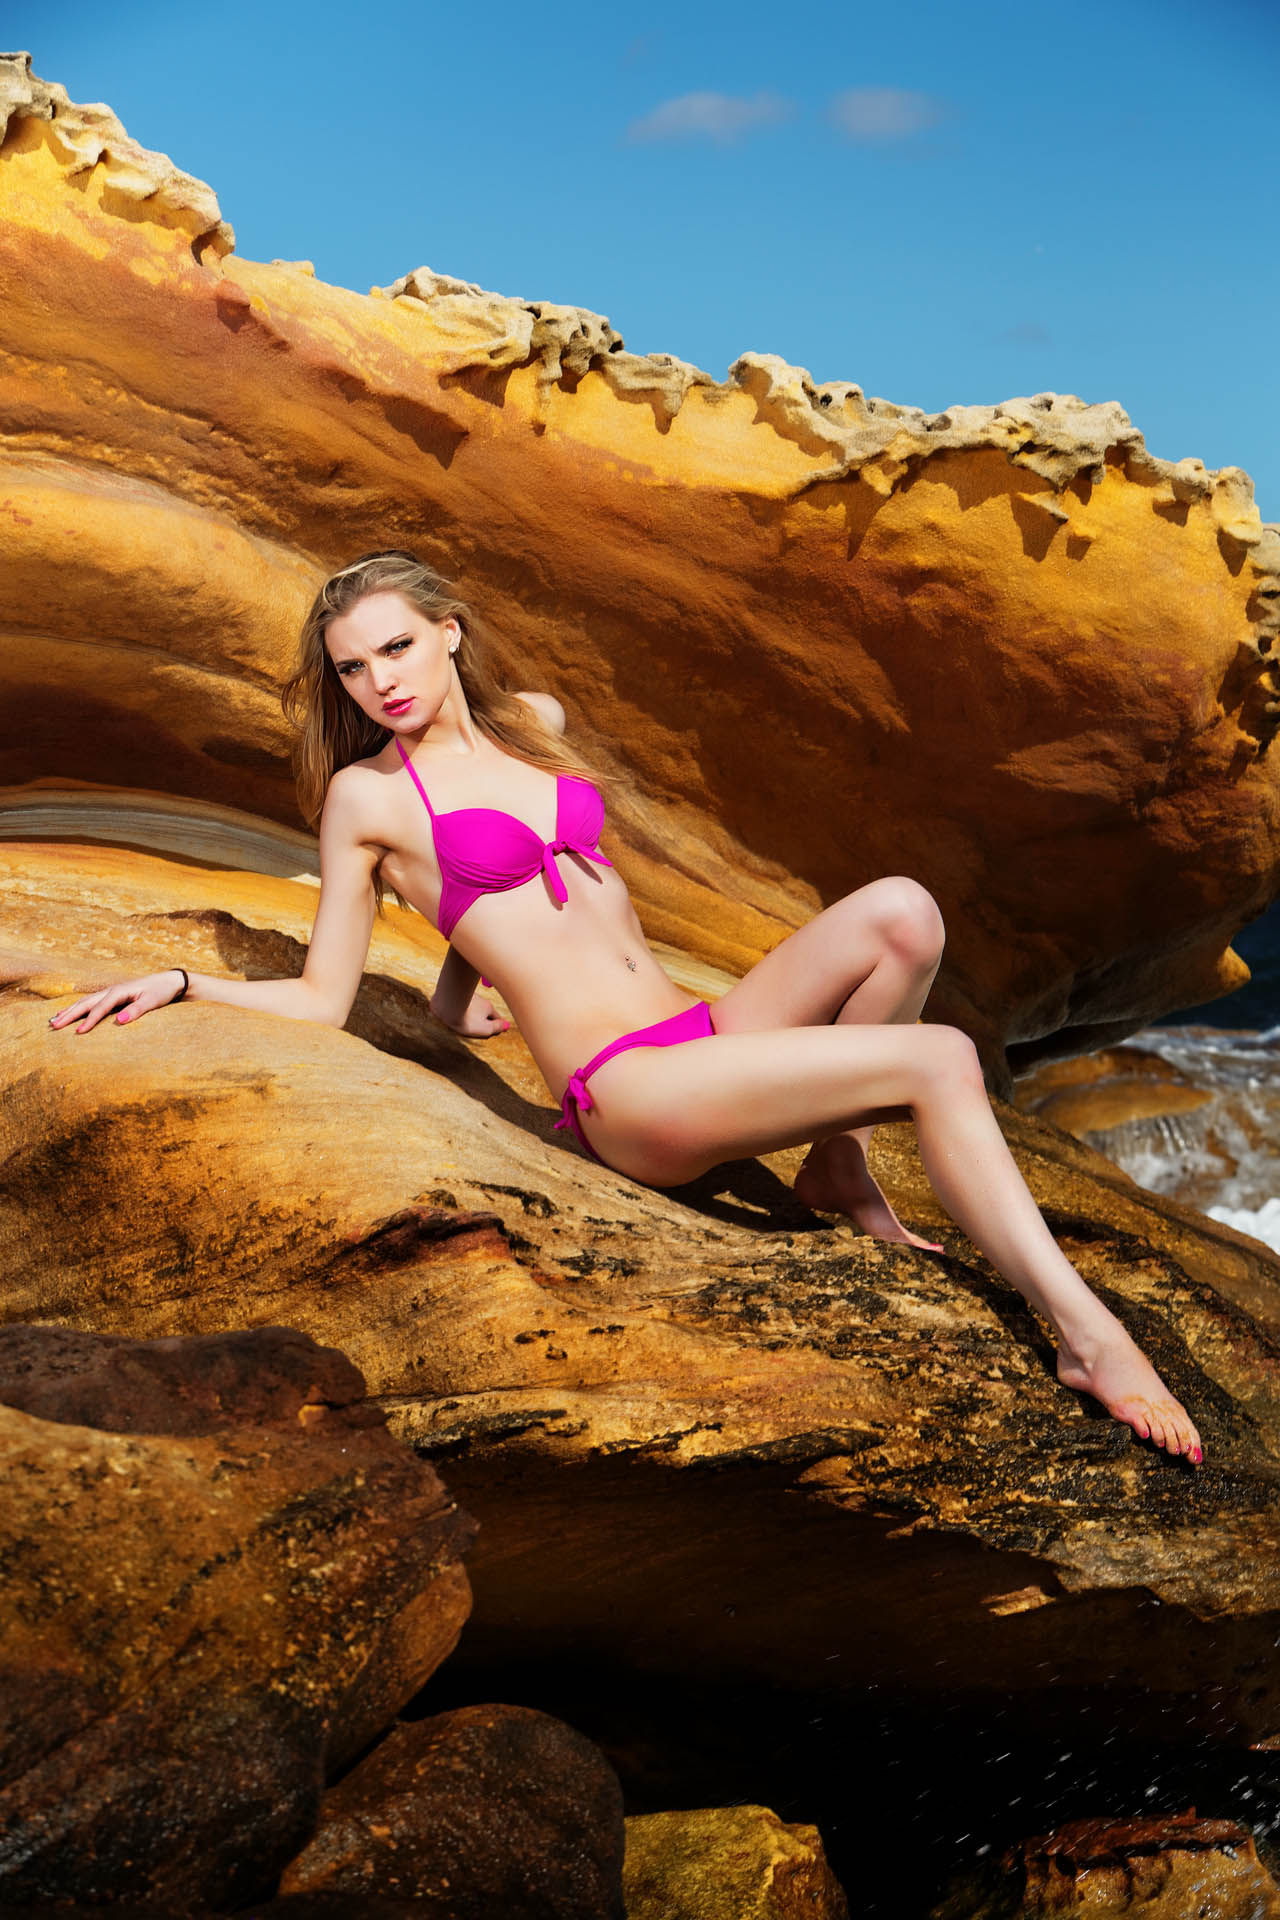 Swimwear Location Shoot with Katie Maconaghie. Hair and makeup by Mariam Fleur Baraka.    Photography by Chris David @chrisdavidphoto